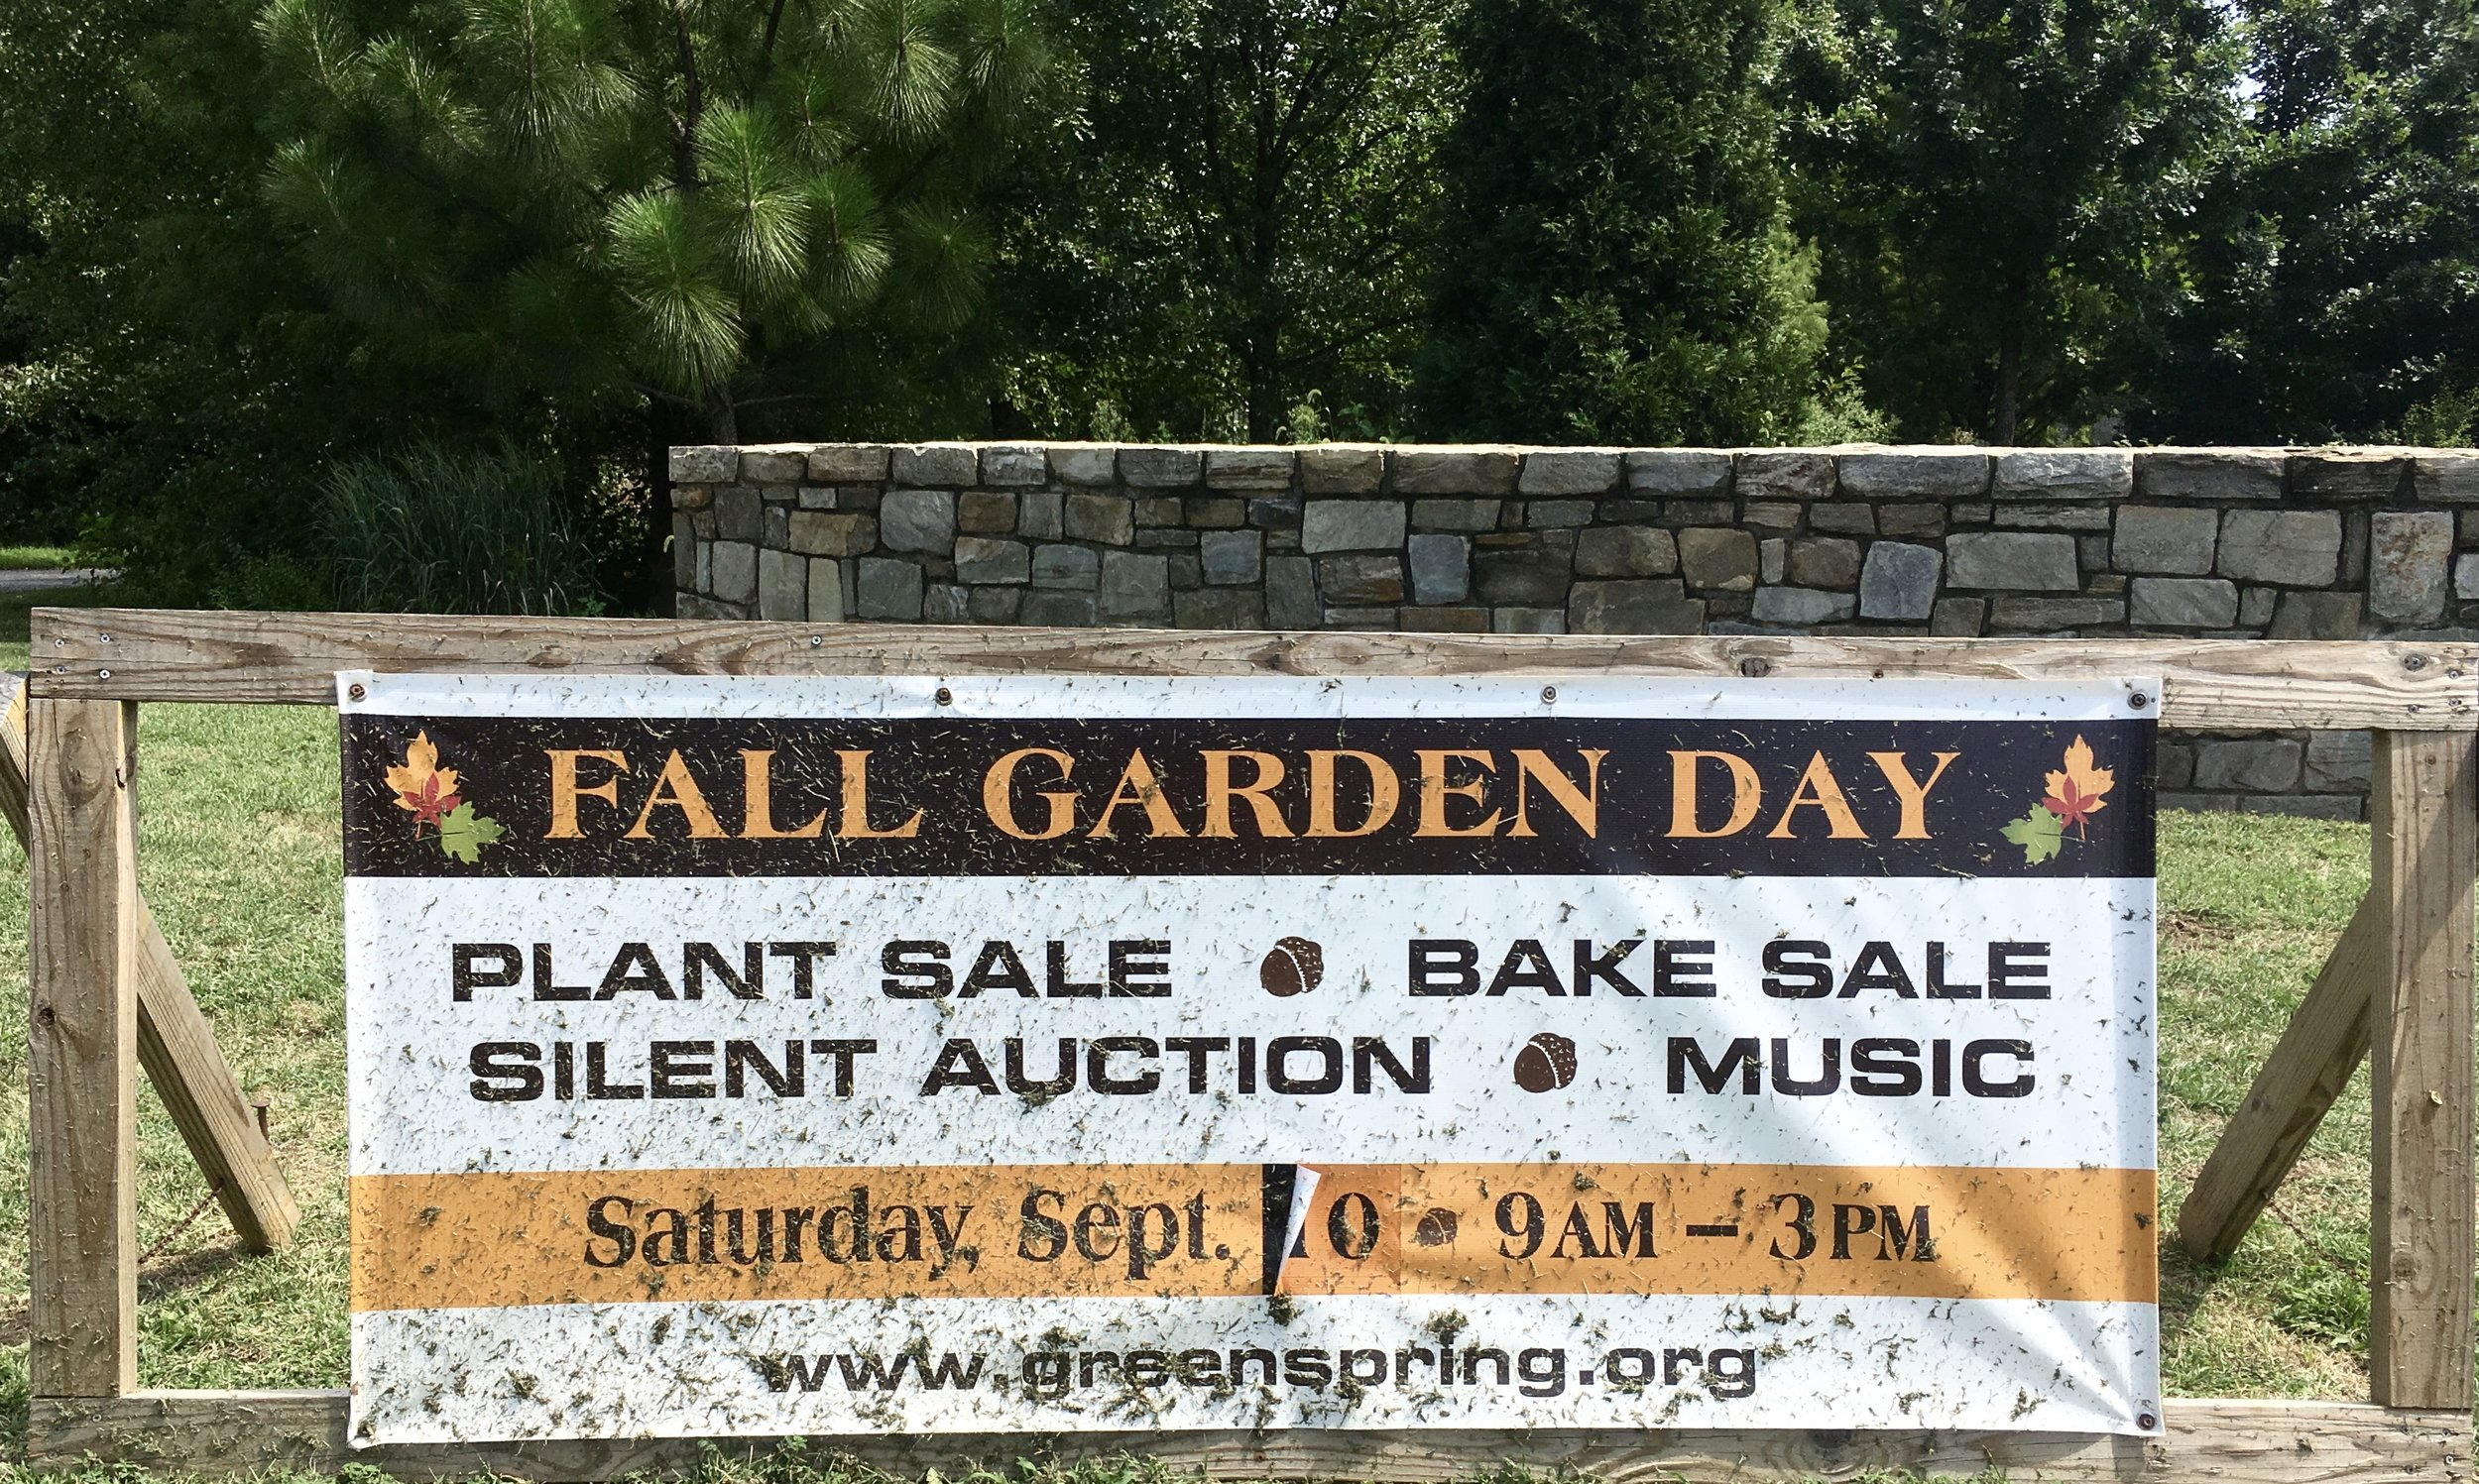 See you Saturday, September 10th at the Fall Garden Day!